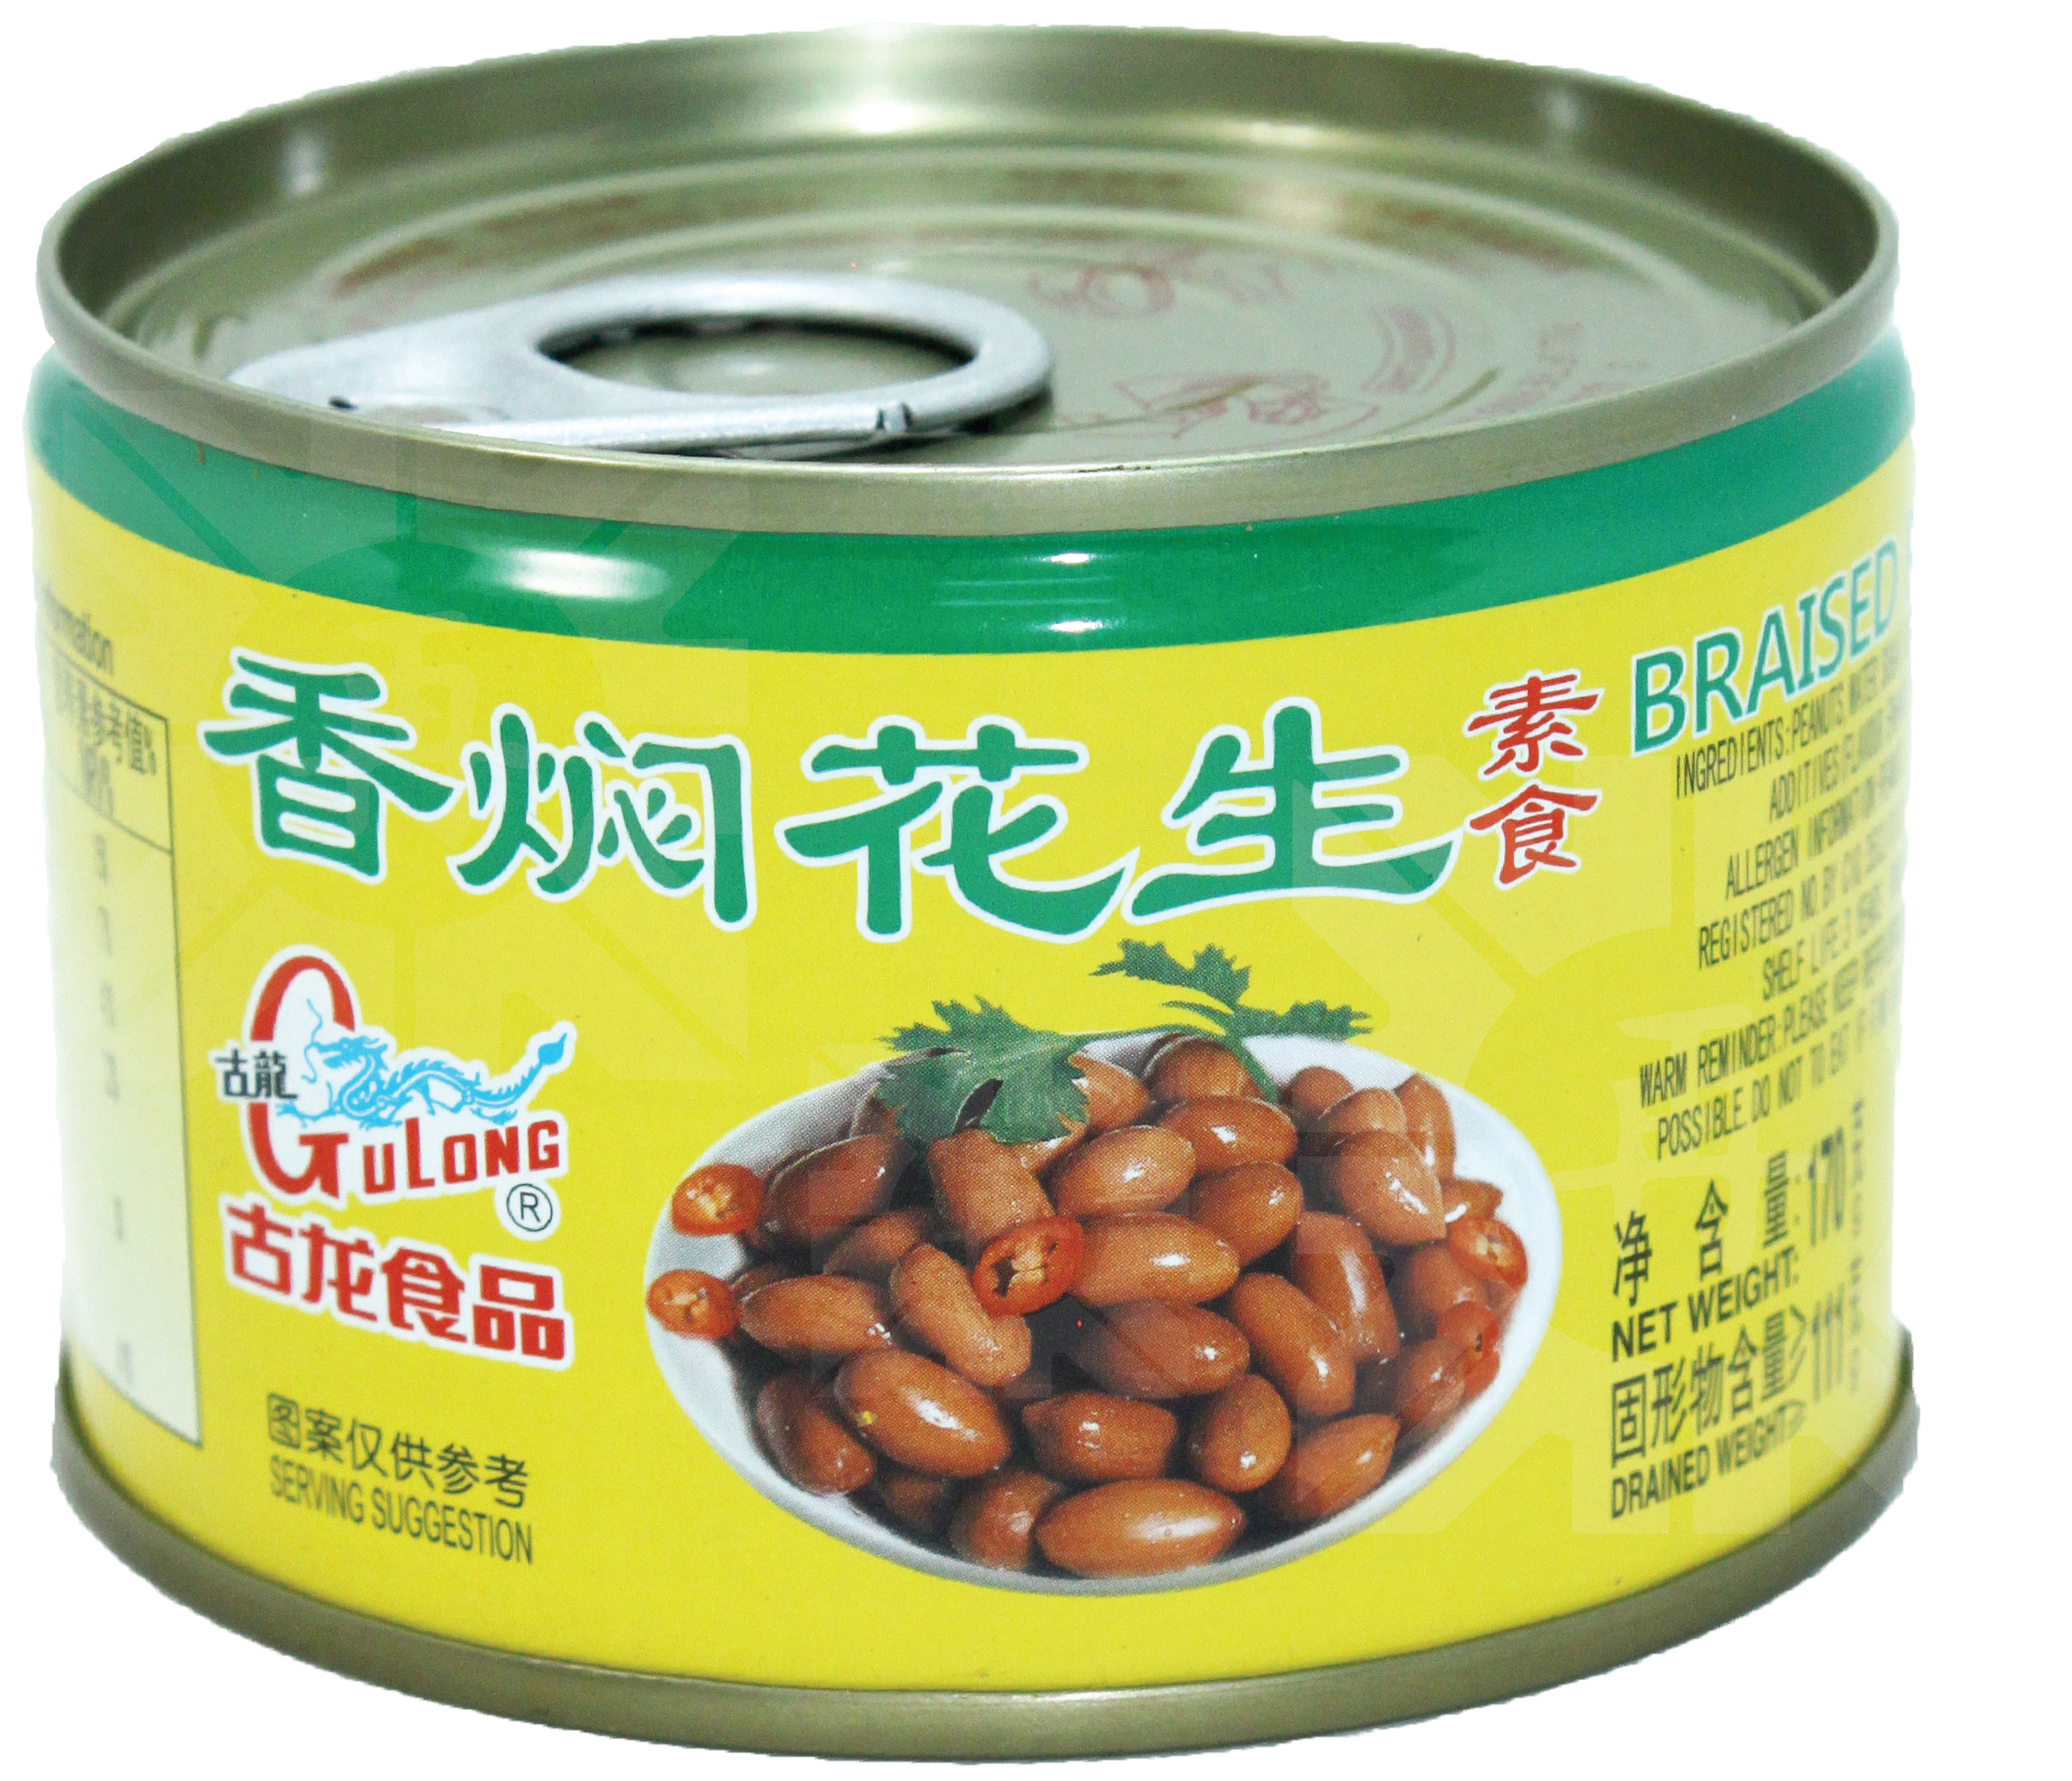 Gulong Braised Peanut.jpg